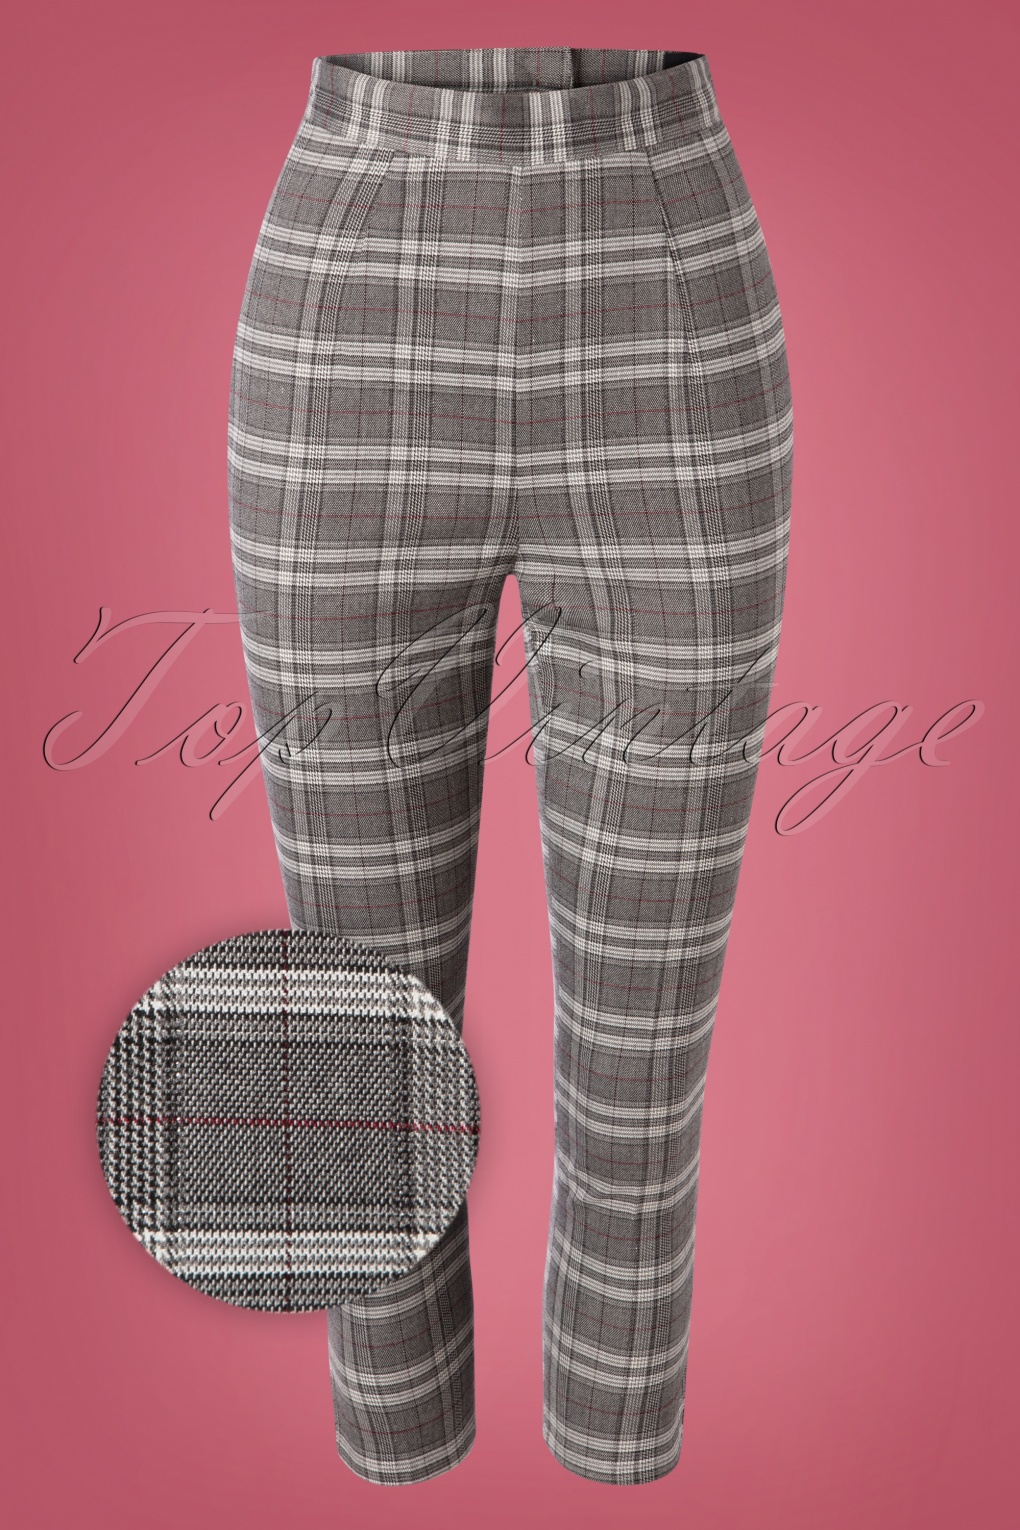 1950s Pants & Jeans- High Waist, Wide Leg, Capri, Pedal Pushers 50s Gibeon Tartan Cigarette Trousers in Grey £29.59 AT vintagedancer.com